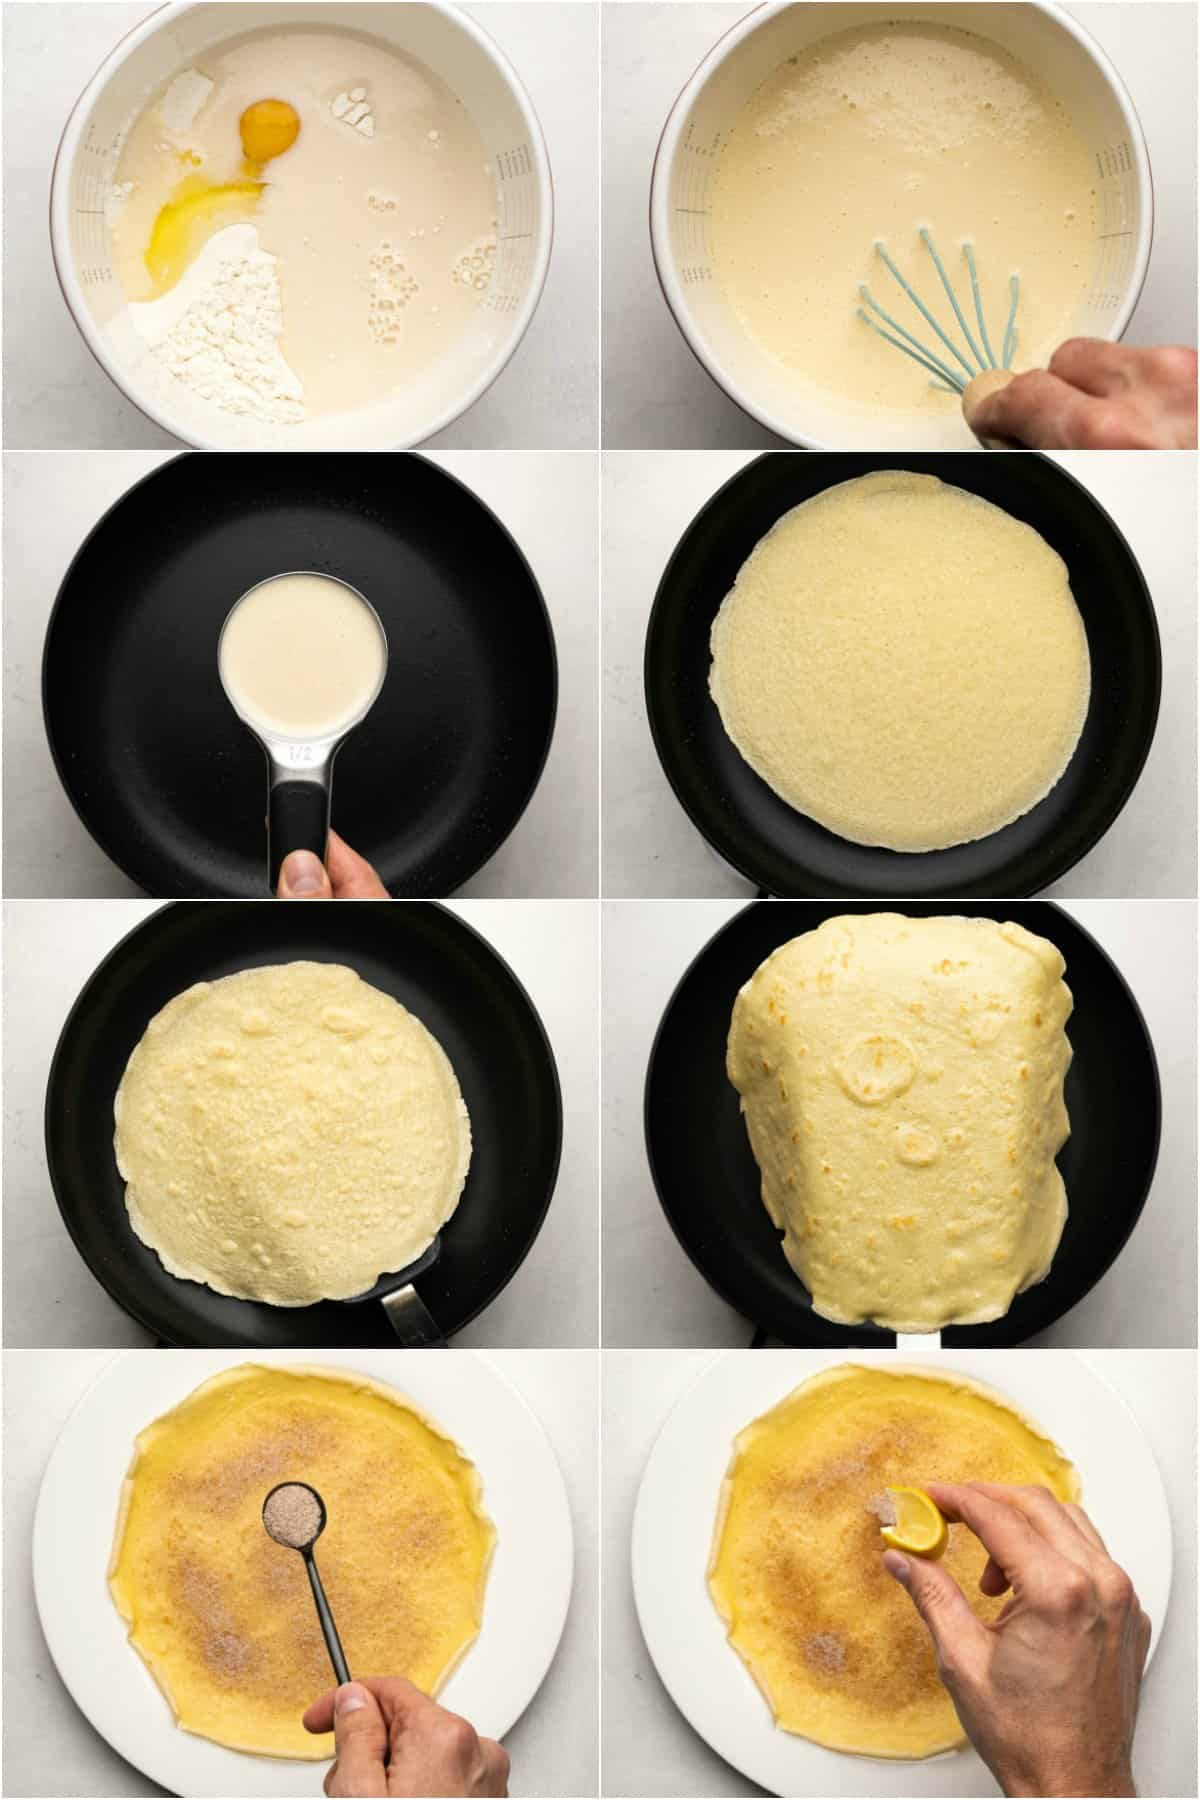 Step by step process photo collage of making crepes.